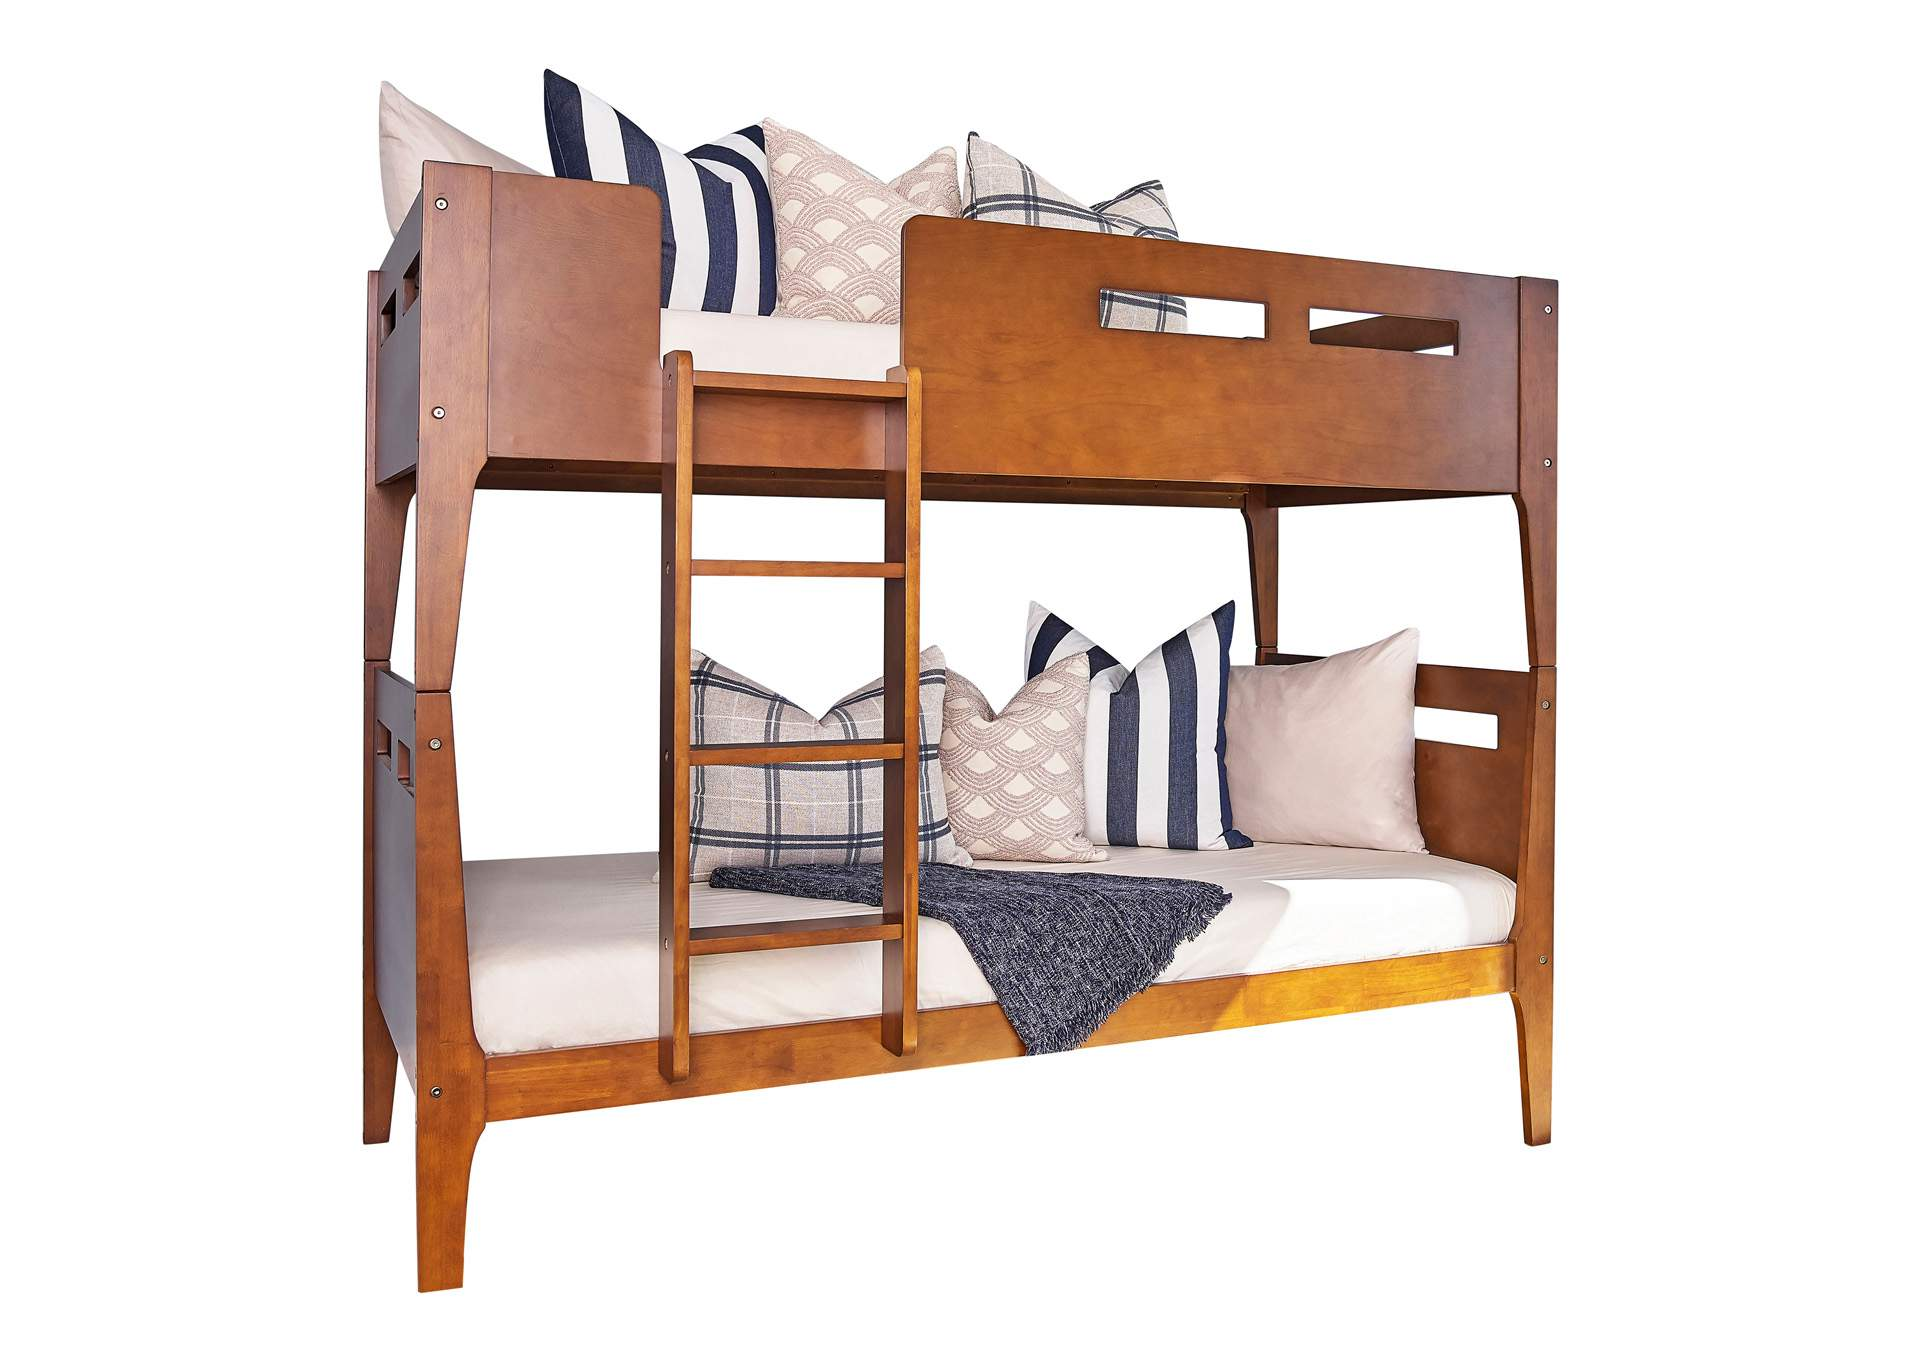 Image result for Bunk bed